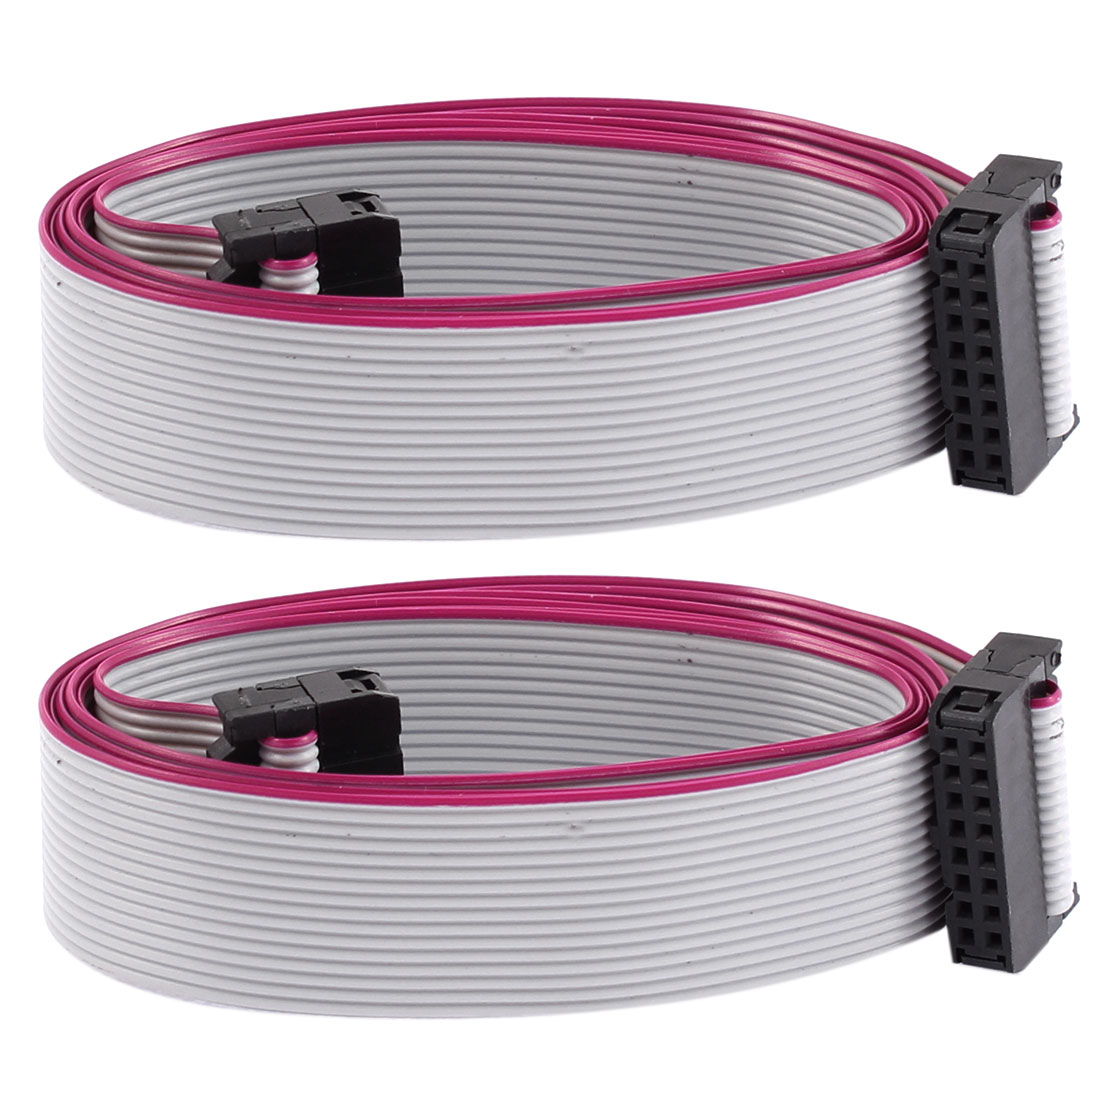 2.54mm Pitch 16 Pins 16 Wires F/F IDC Connector Flat Ribbon Cable 1 Meter 2pcs